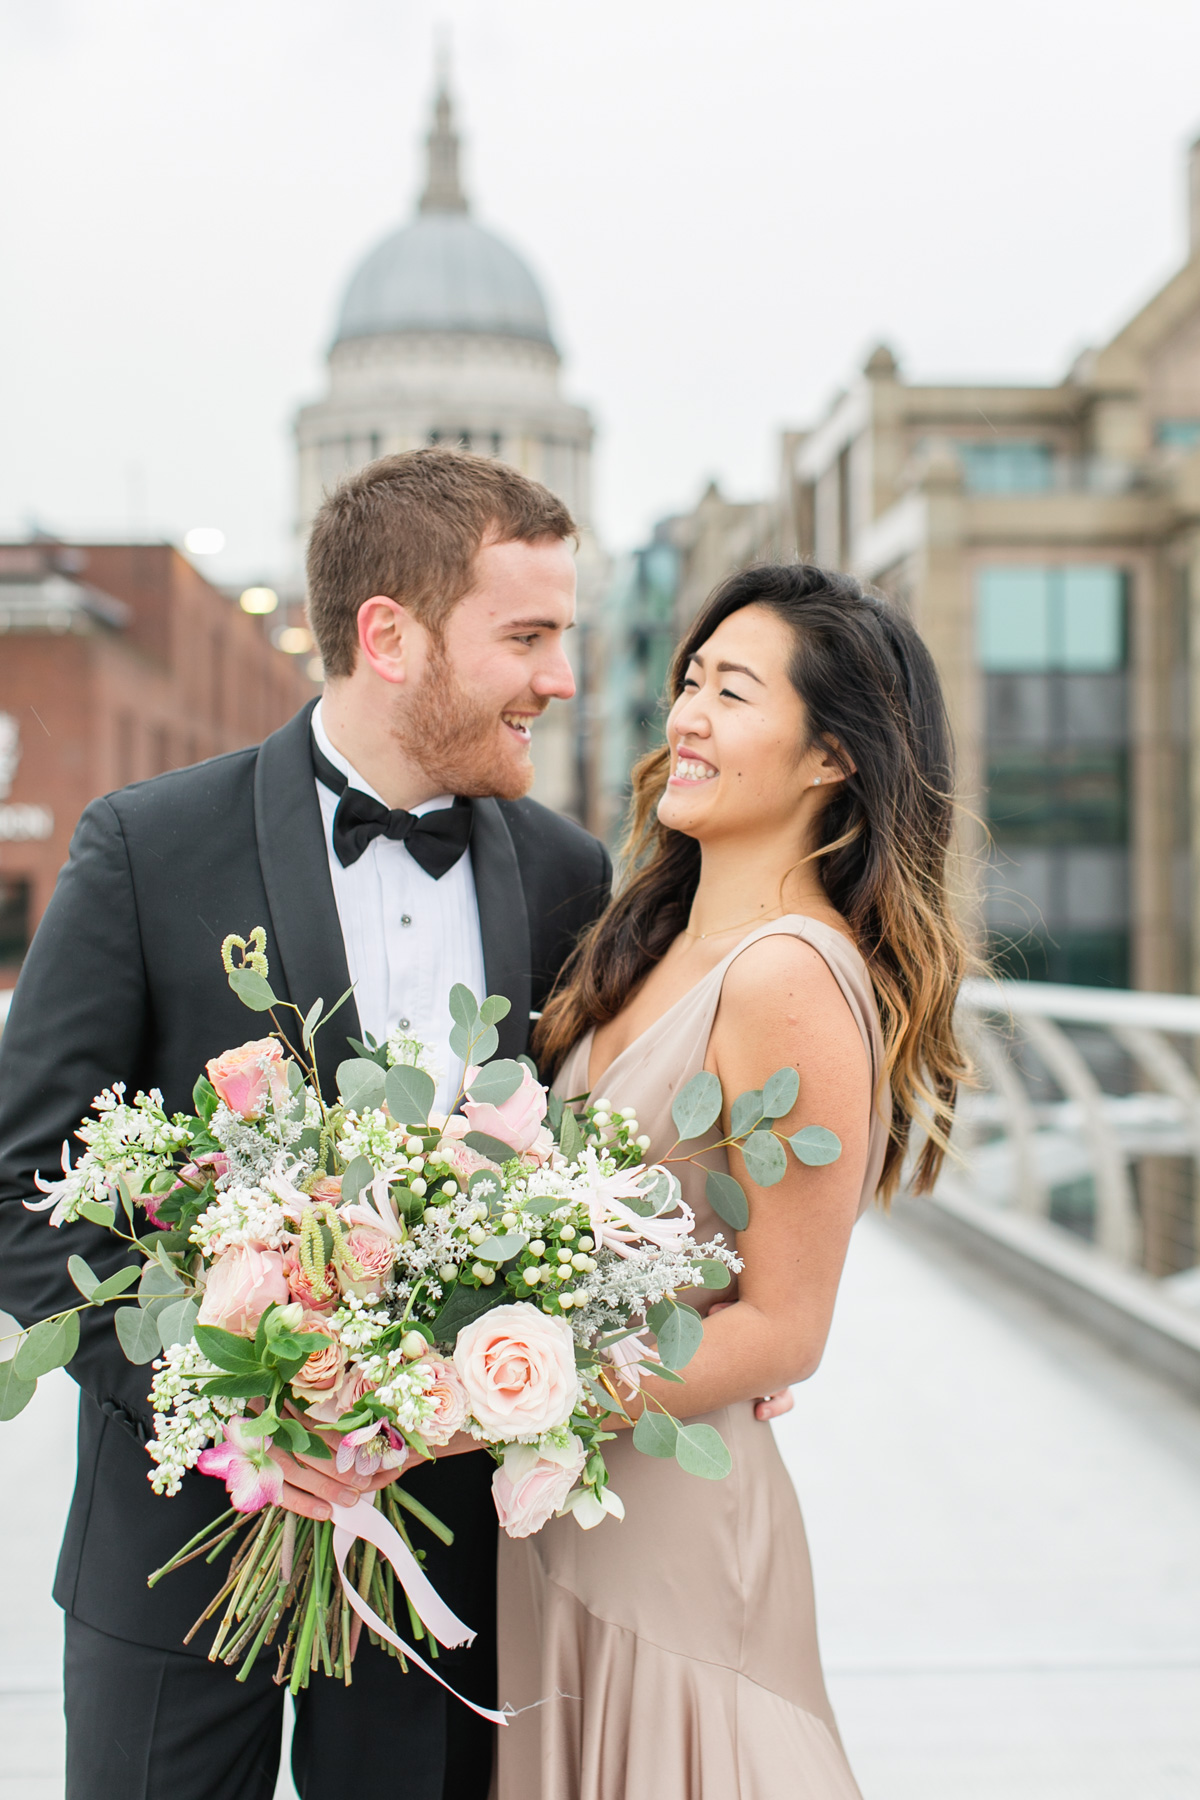 Floral Bouquets Trends For 2019 2020 Weddings Bloved Blog